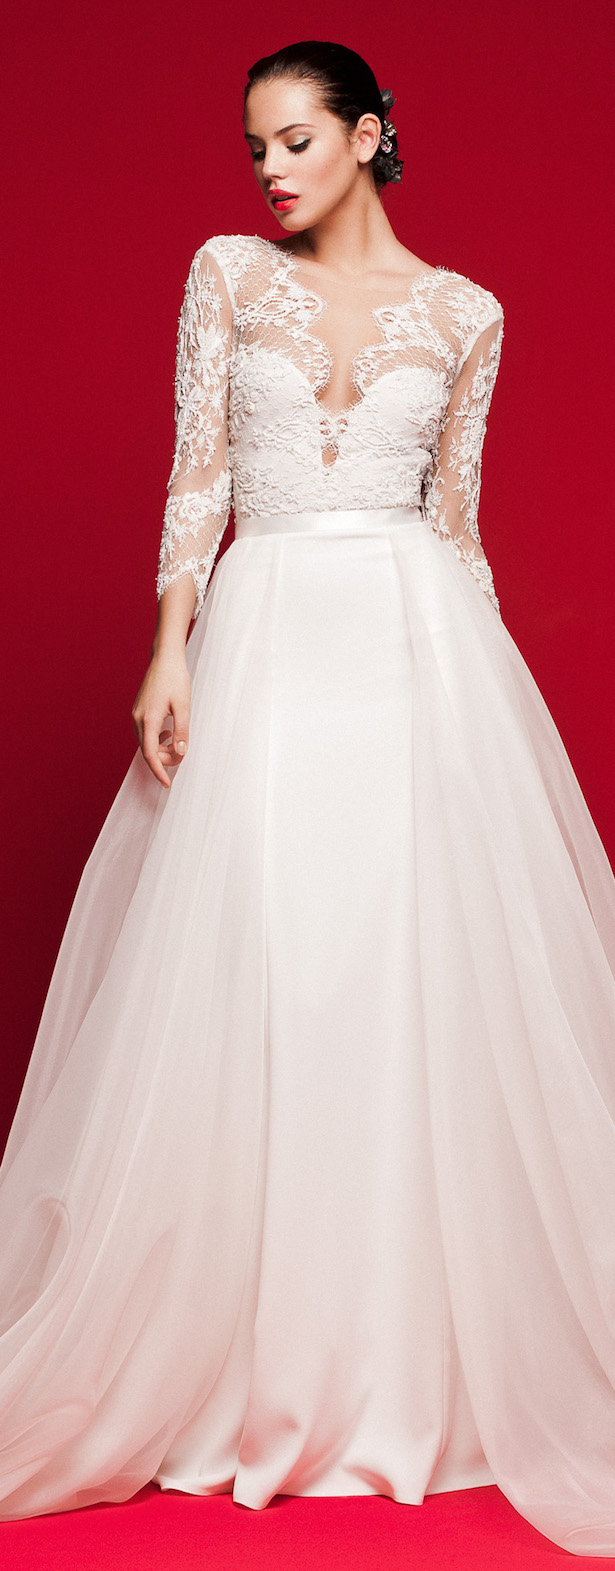 Wedding dress 2018 trends